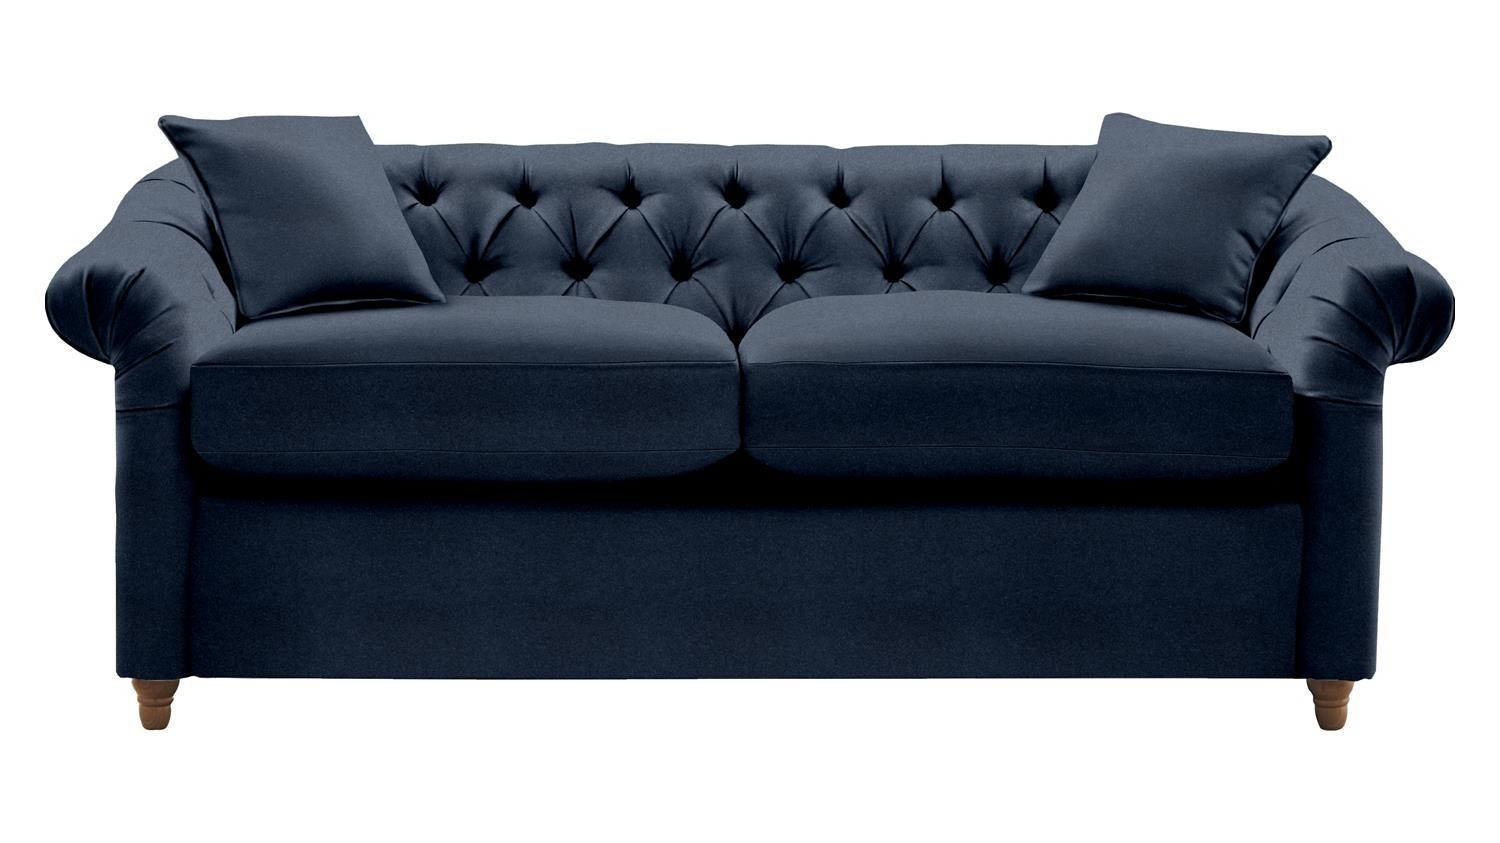 The Kittisford 2 Seater Sofa Bed